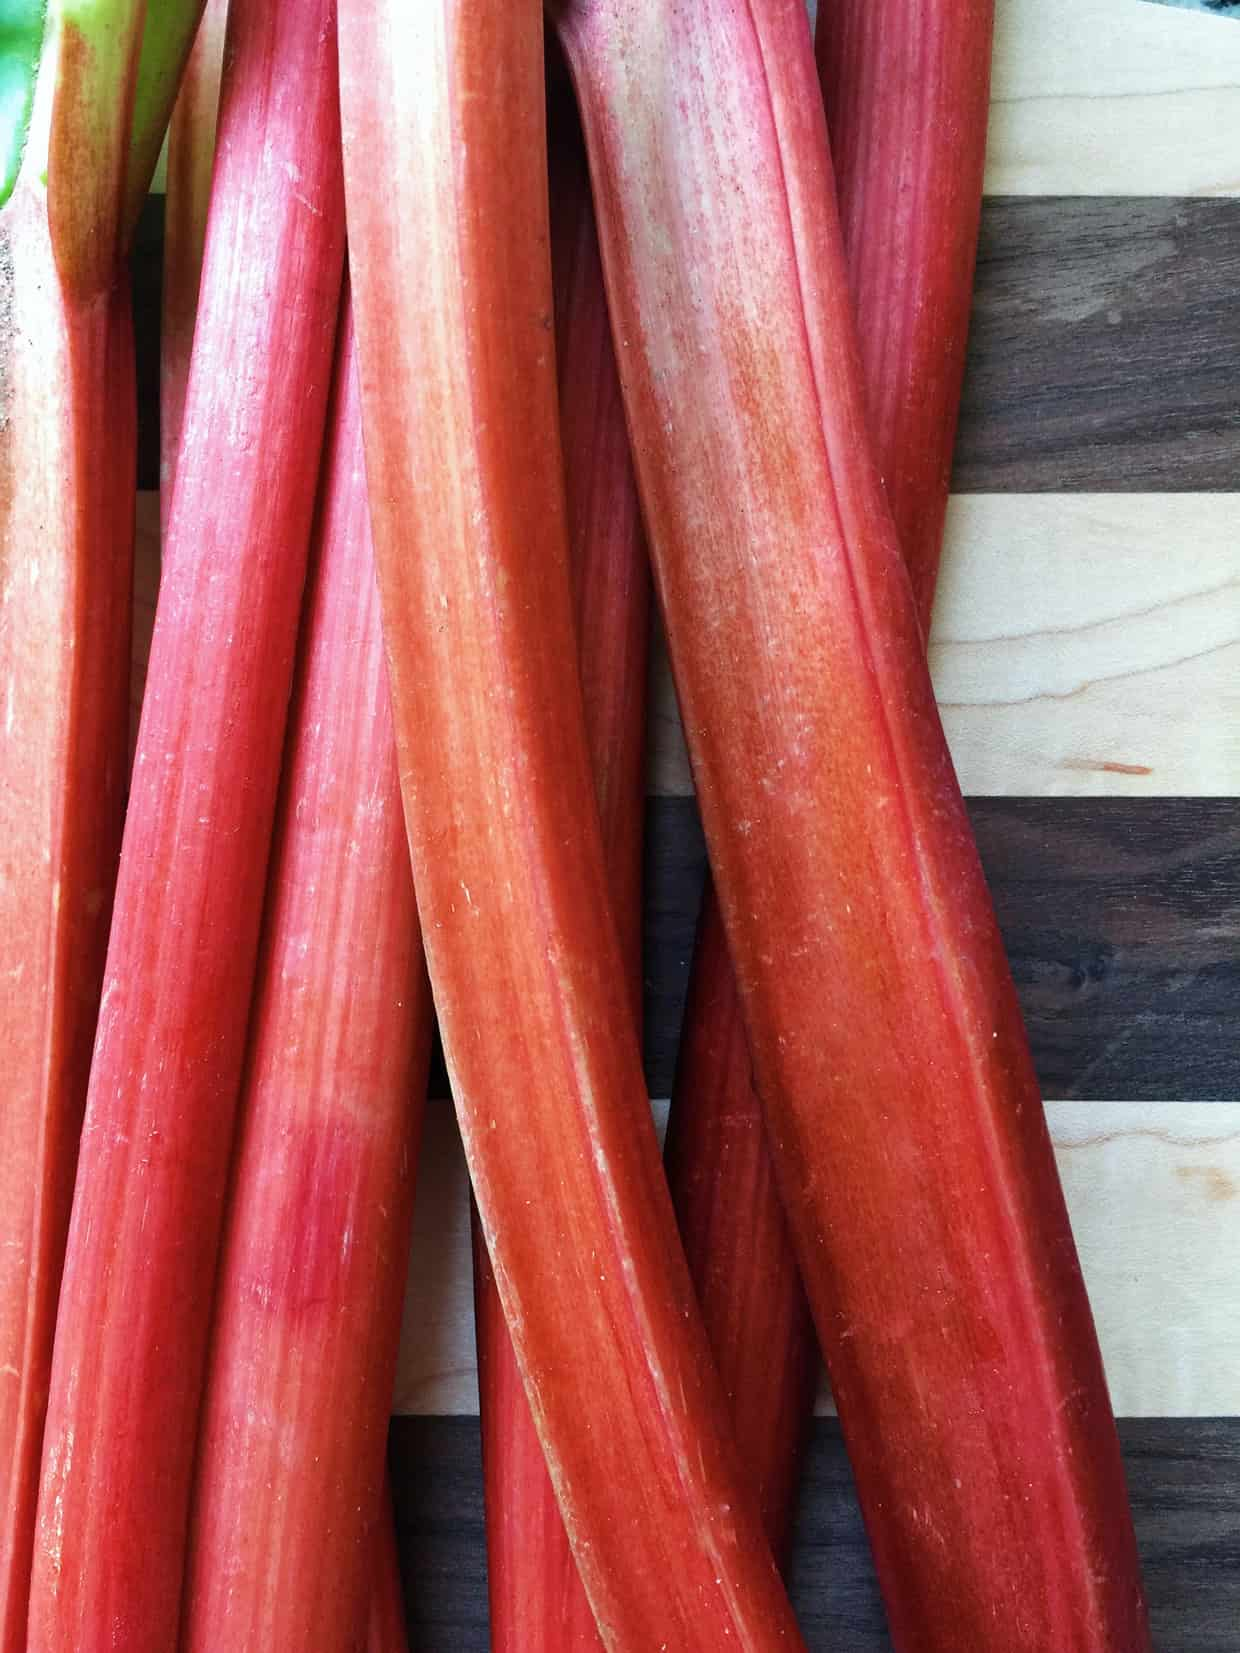 Rhubarb is one of the Five Little Things I loved the week of April 15, 2016.